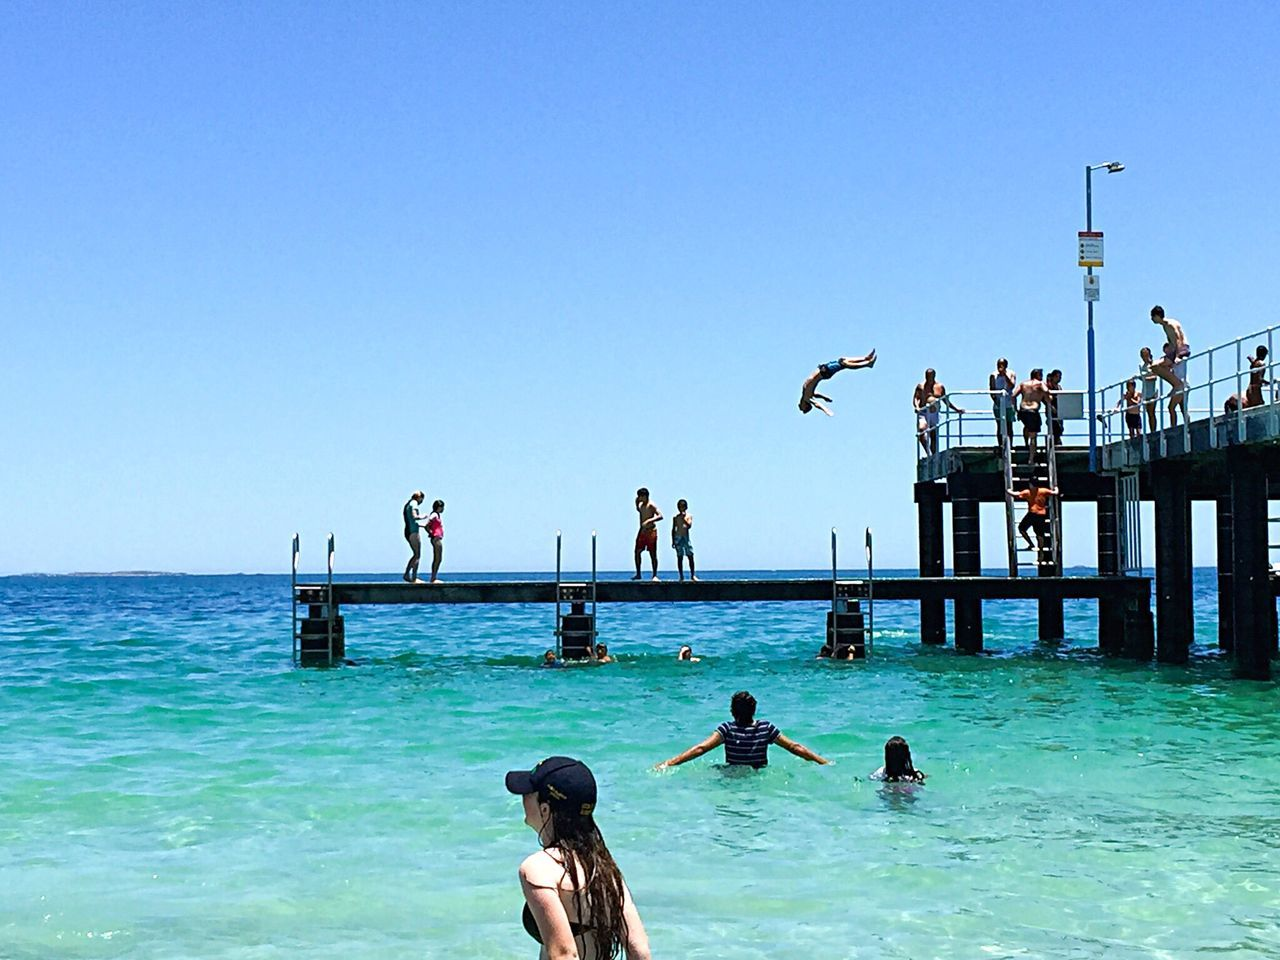 Diving Backwards: Jetty Fun Dive Leap Of Faith Fearless Turquoise Water Sea Ocean Indian Ocean Leaping People Families Adrenaline Junkie Thrill Fun Water Fun Jumping Jetty Beach Lifestyle Beach Life Western Australia Beach Beach Photography Australia Summertime Summer Backwards Dive